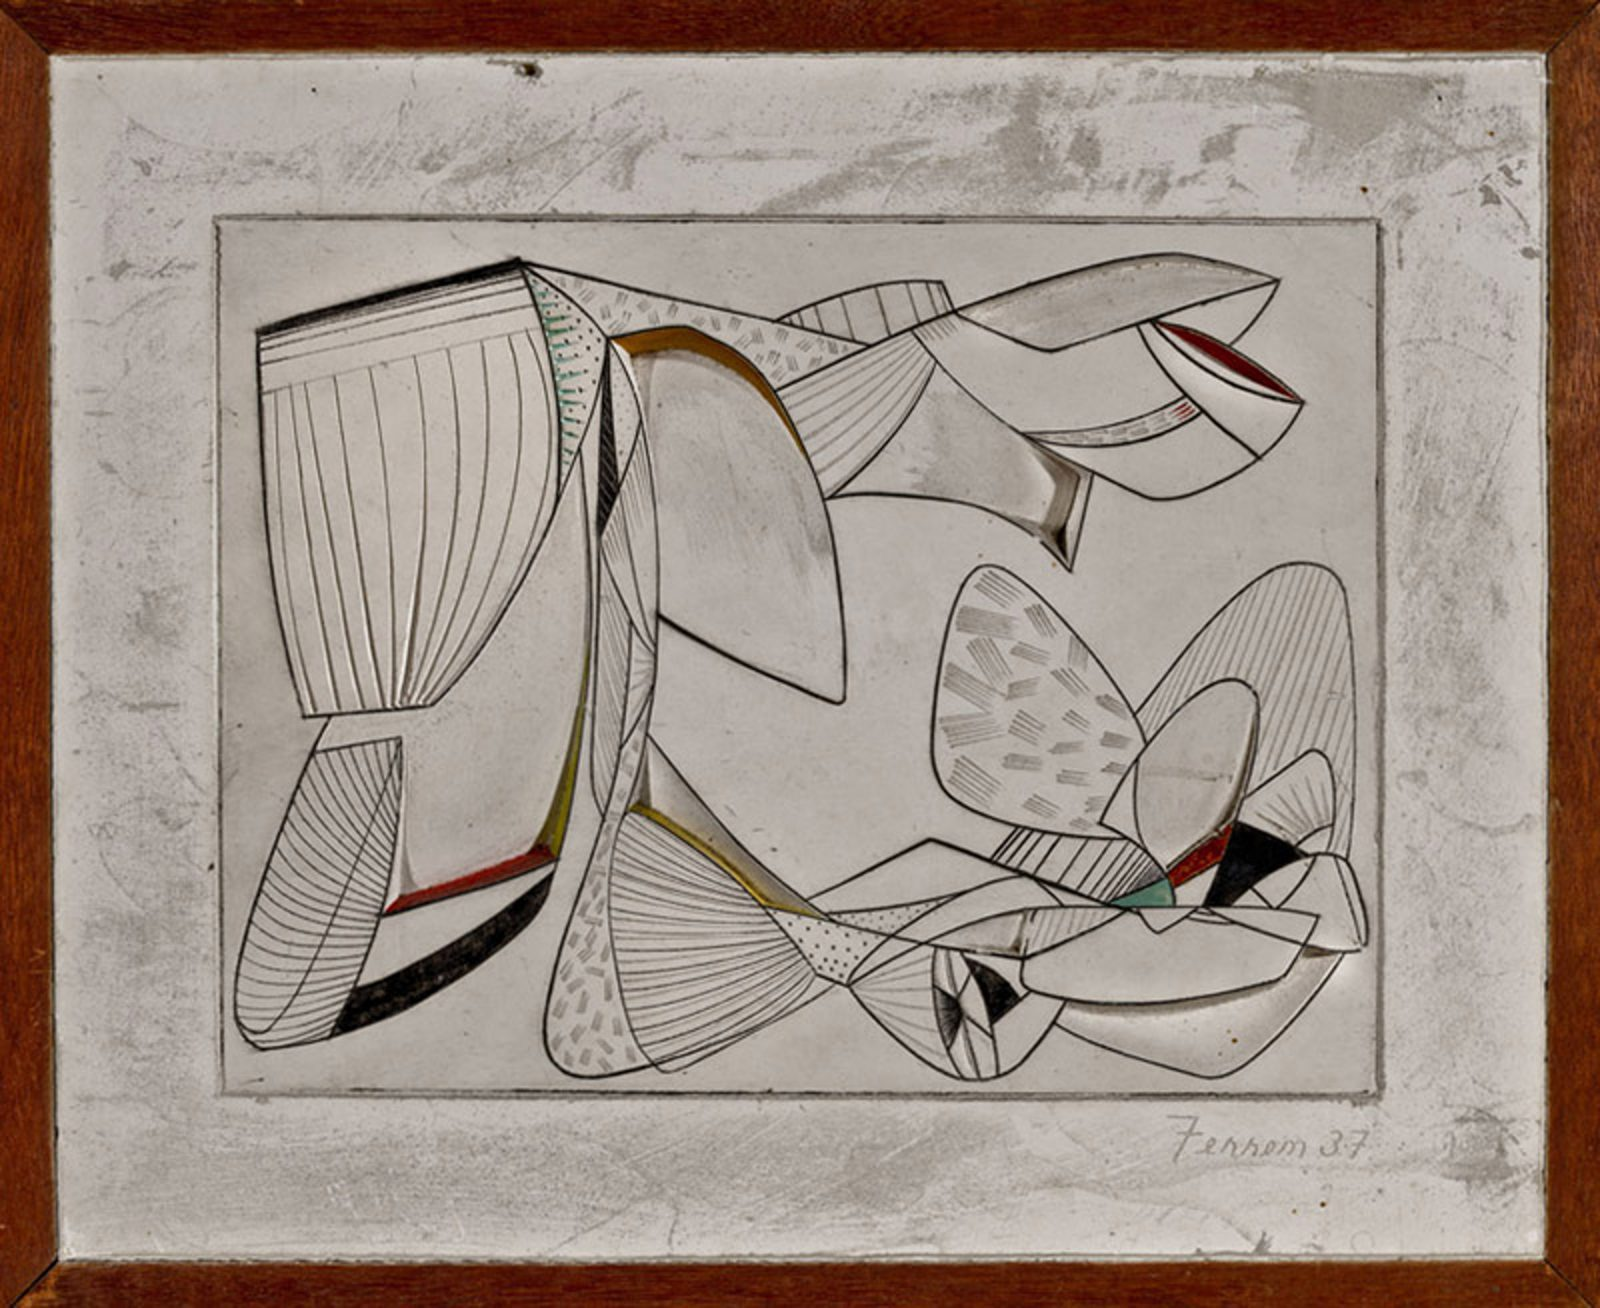 This work by John Ferren is an abstract composition in white tones